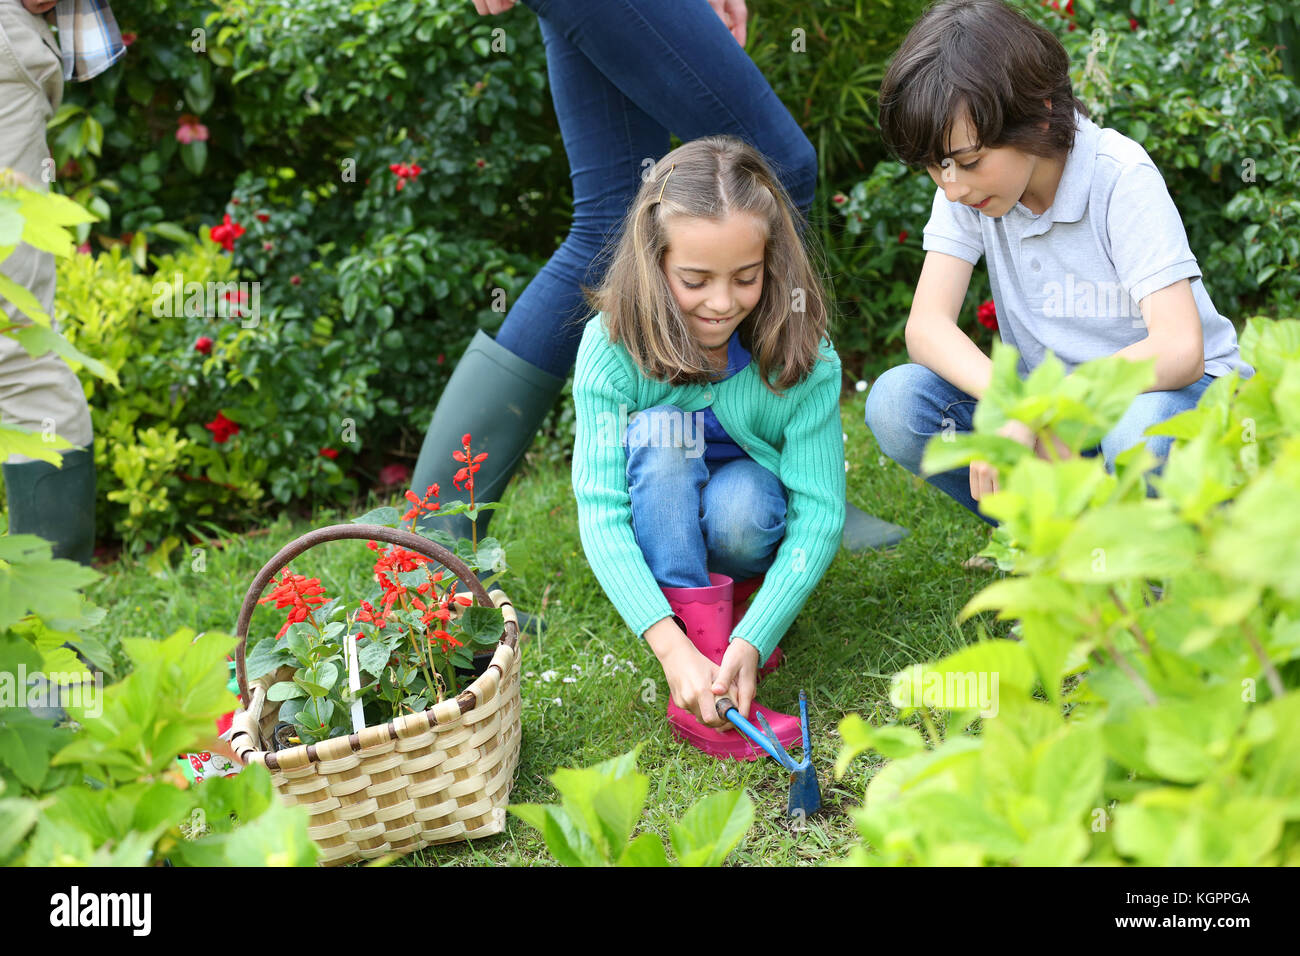 Kids gardening at home together in springtime - Stock Image